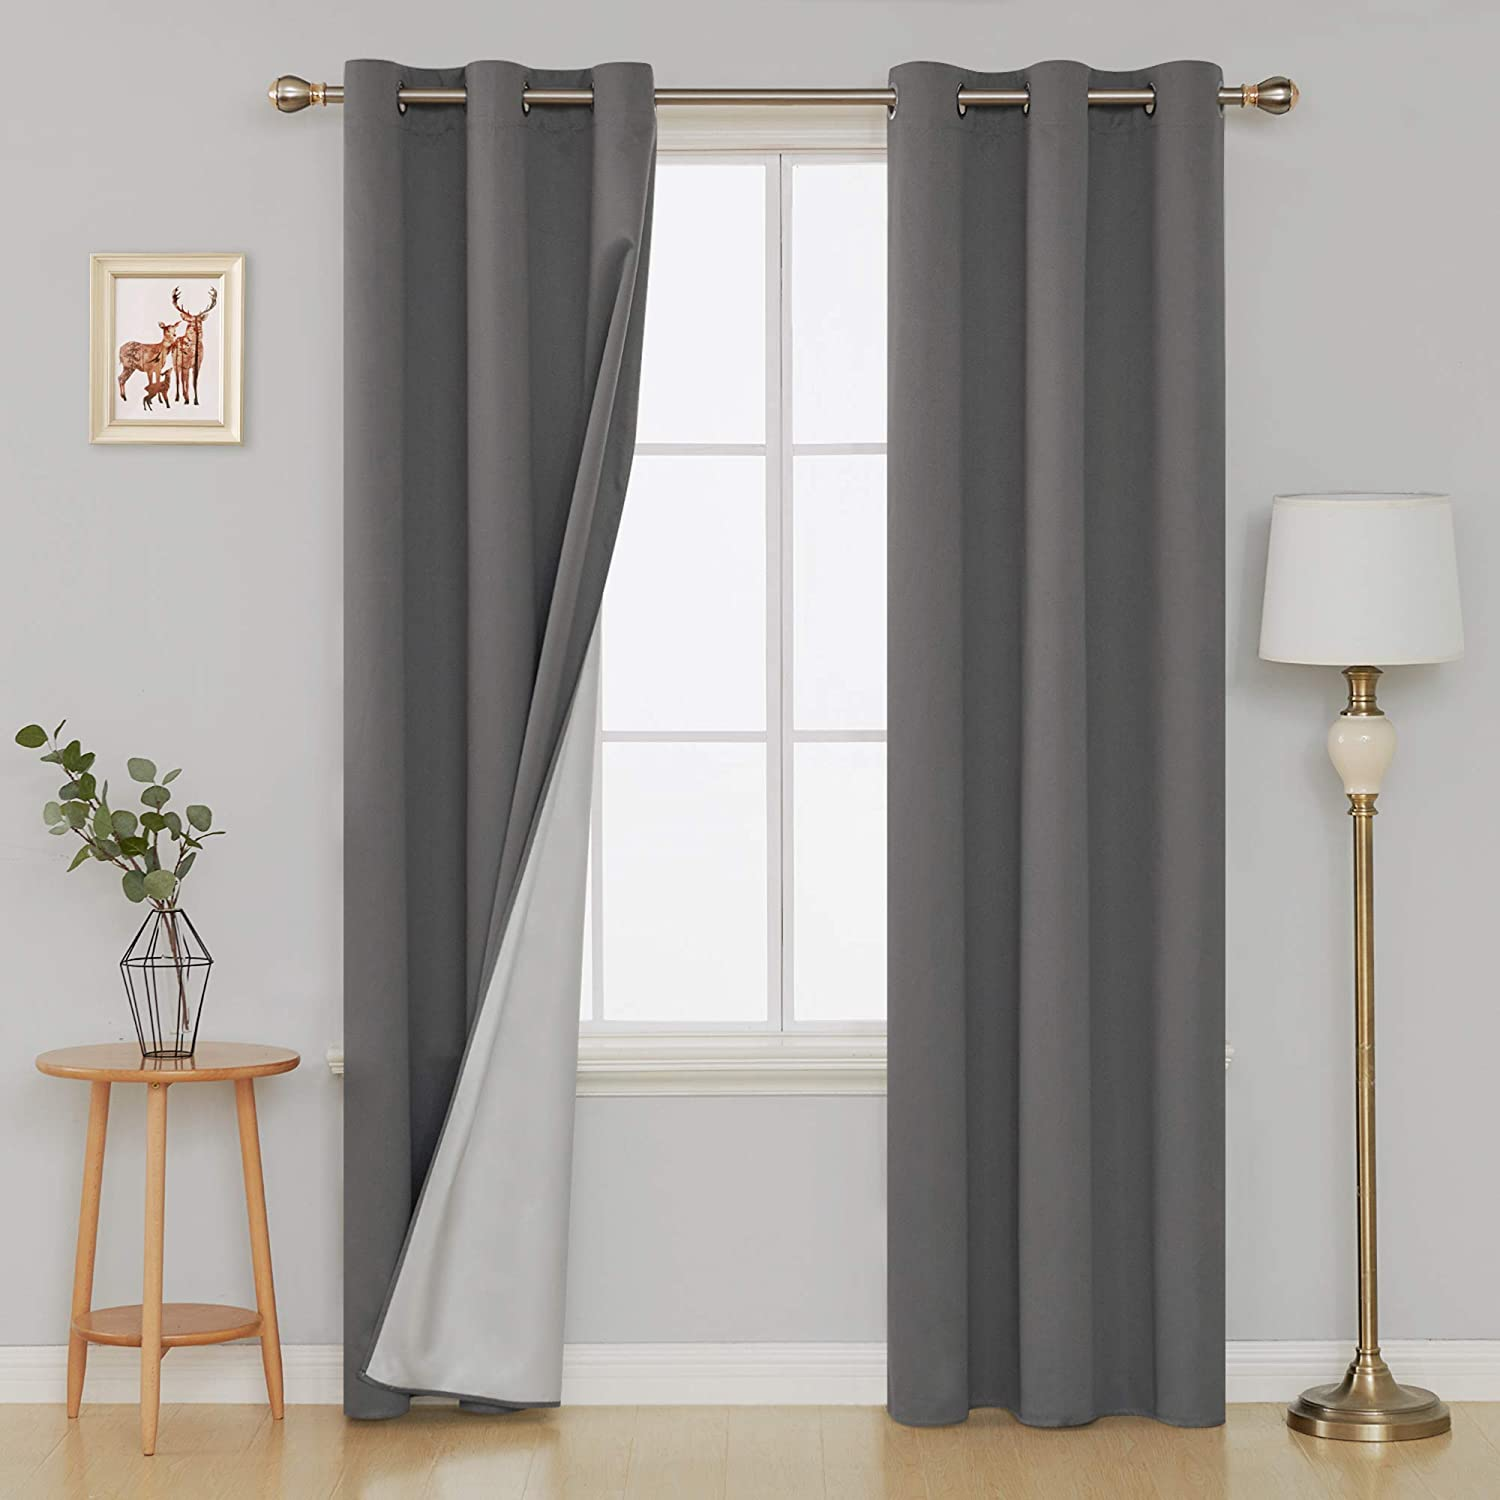 Deconovo Energy Saving Grommet Blackout Curtains with Silver Coated Backing Thermal Insulated Drapery Drapes for Window 42W x 84L Inch Light Grey 2 Panels